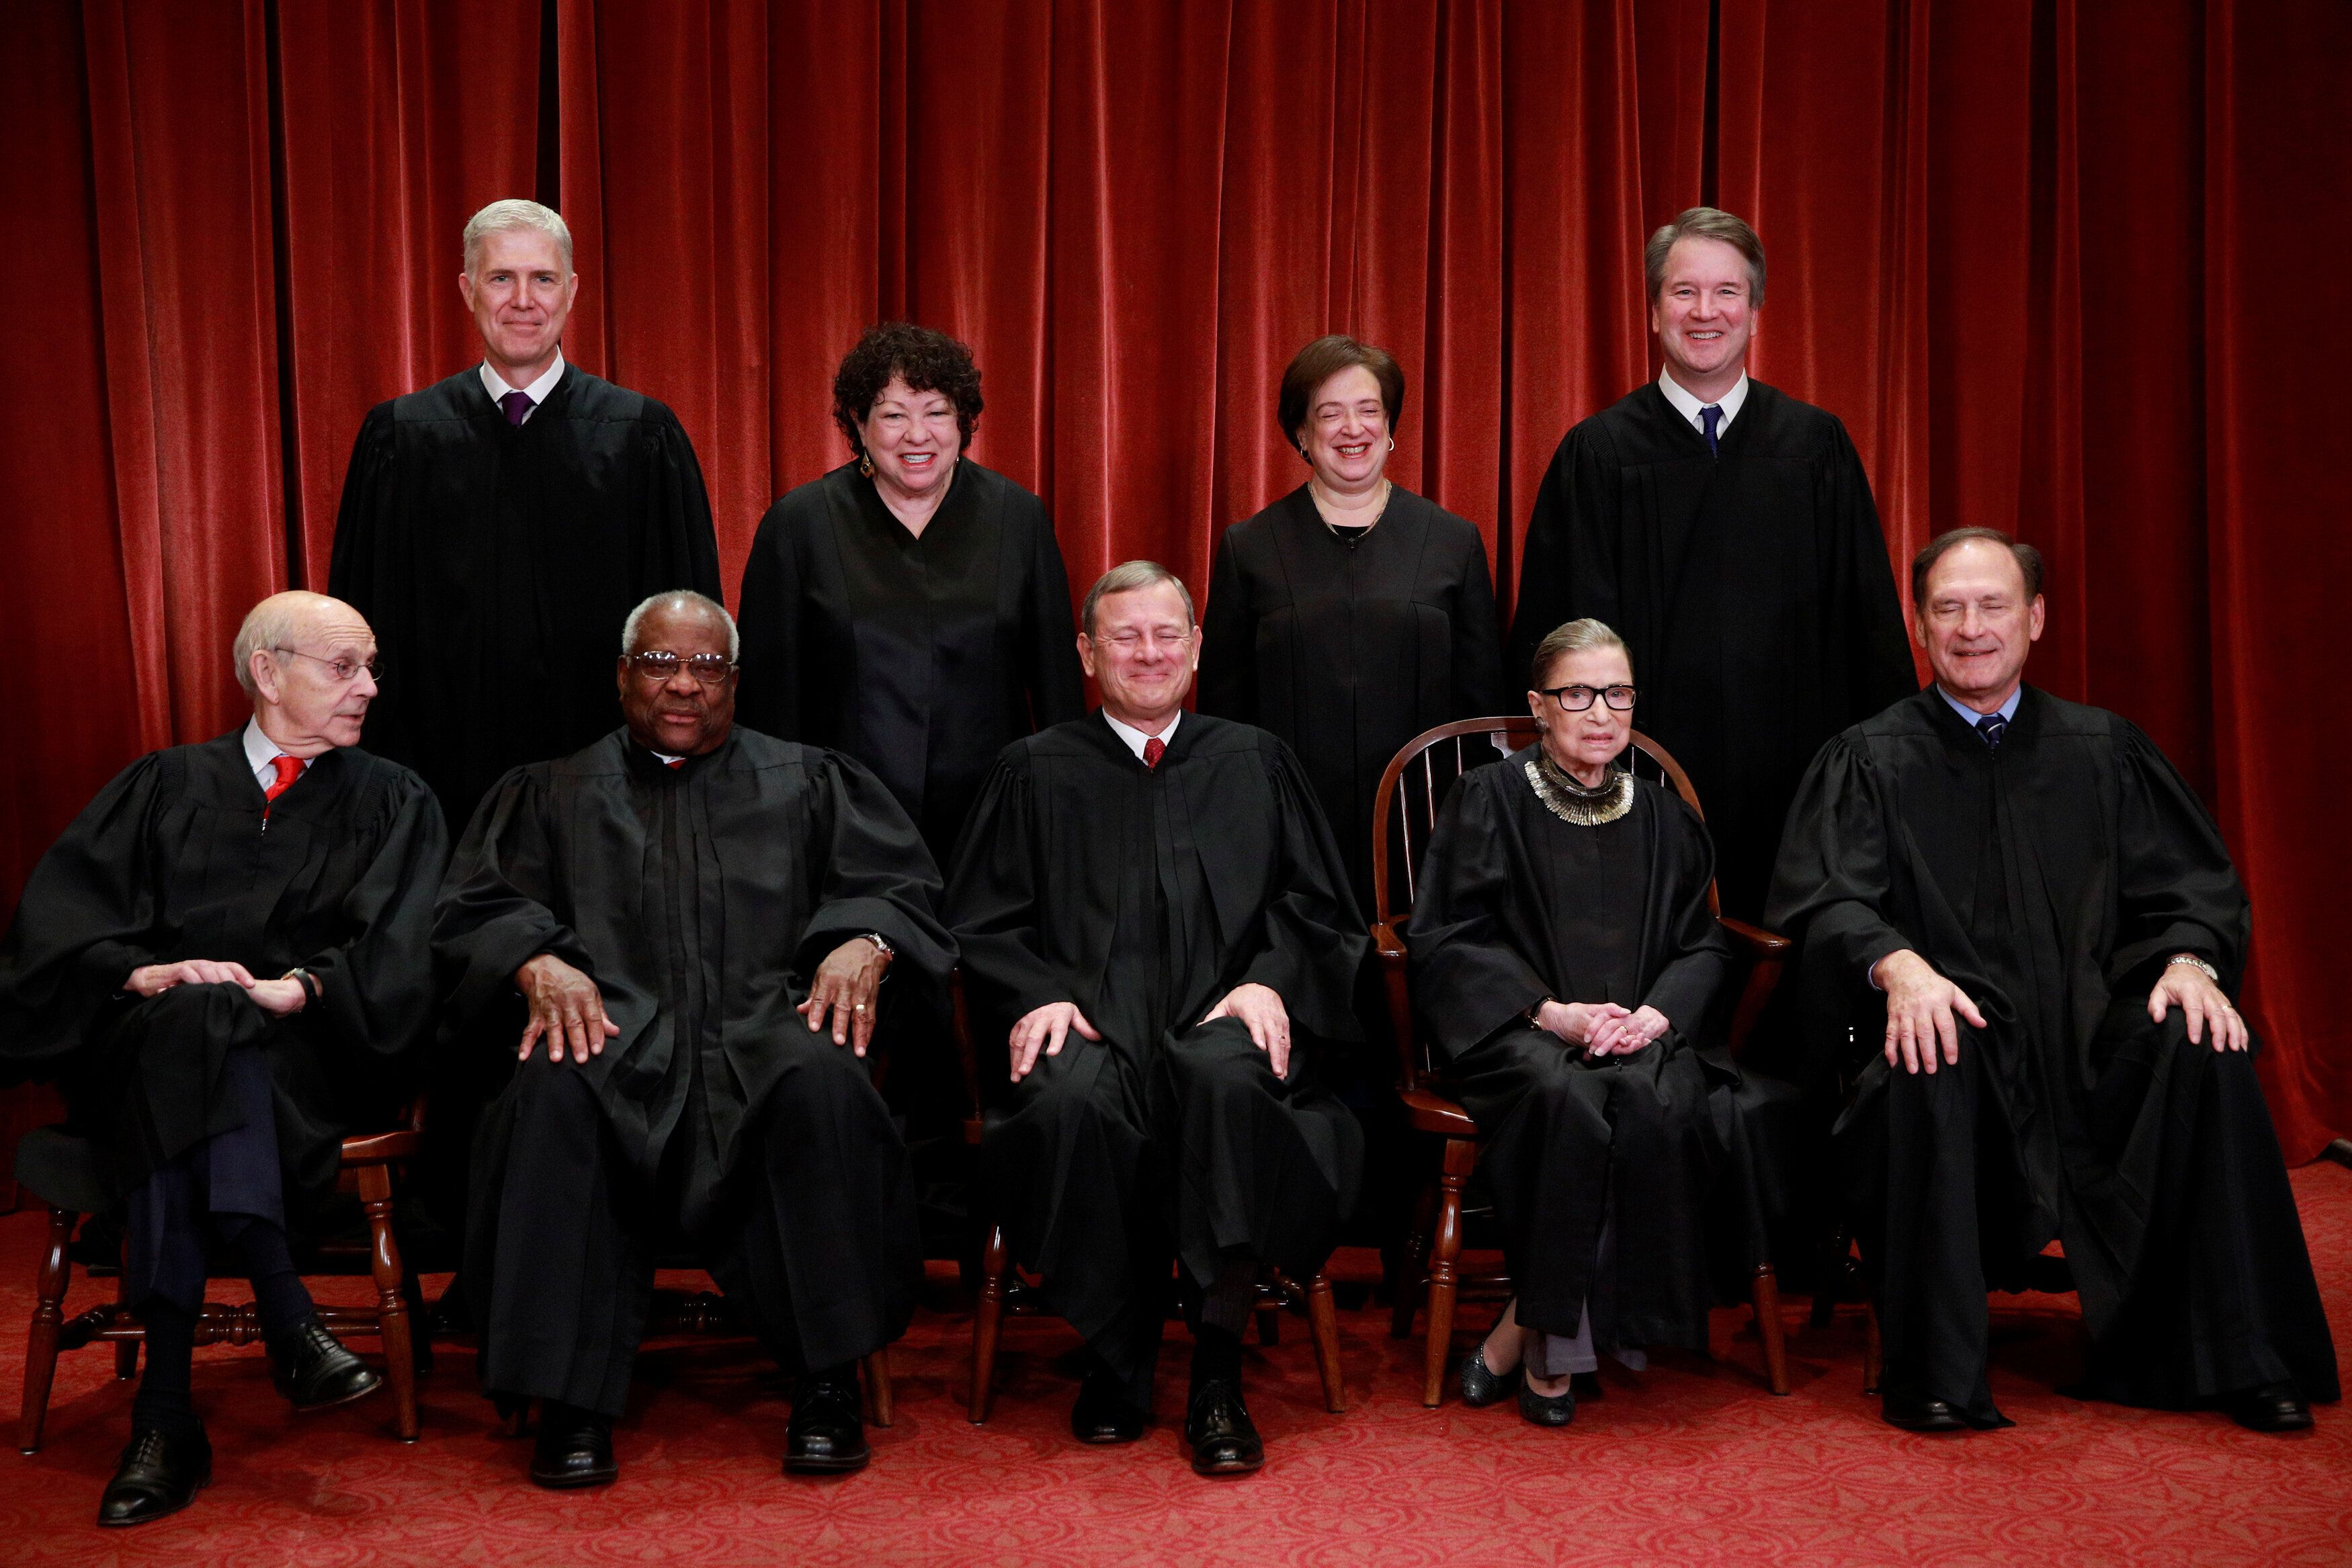 U.S. Supreme Court justices pose for their group portrait at the Supreme Court in Washington, U.S., November 30, 2018. Seated (L-R): Associate Justice Stephen Breyer, Associate Justice Clarence Thomas, Chief Justice of the United States John G. Roberts, Associate Justice Ruth Bader Ginsburg and Associate Justice Samuel Alito, Jr. Standing behind (L-R): Associate Justice Neil Gorsuch, Associate Justice Sonia Sotomayor, Associate Justice Elena Kagan and Associate Justice Brett M. Kavanaugh.  REUTERS/Jim Young